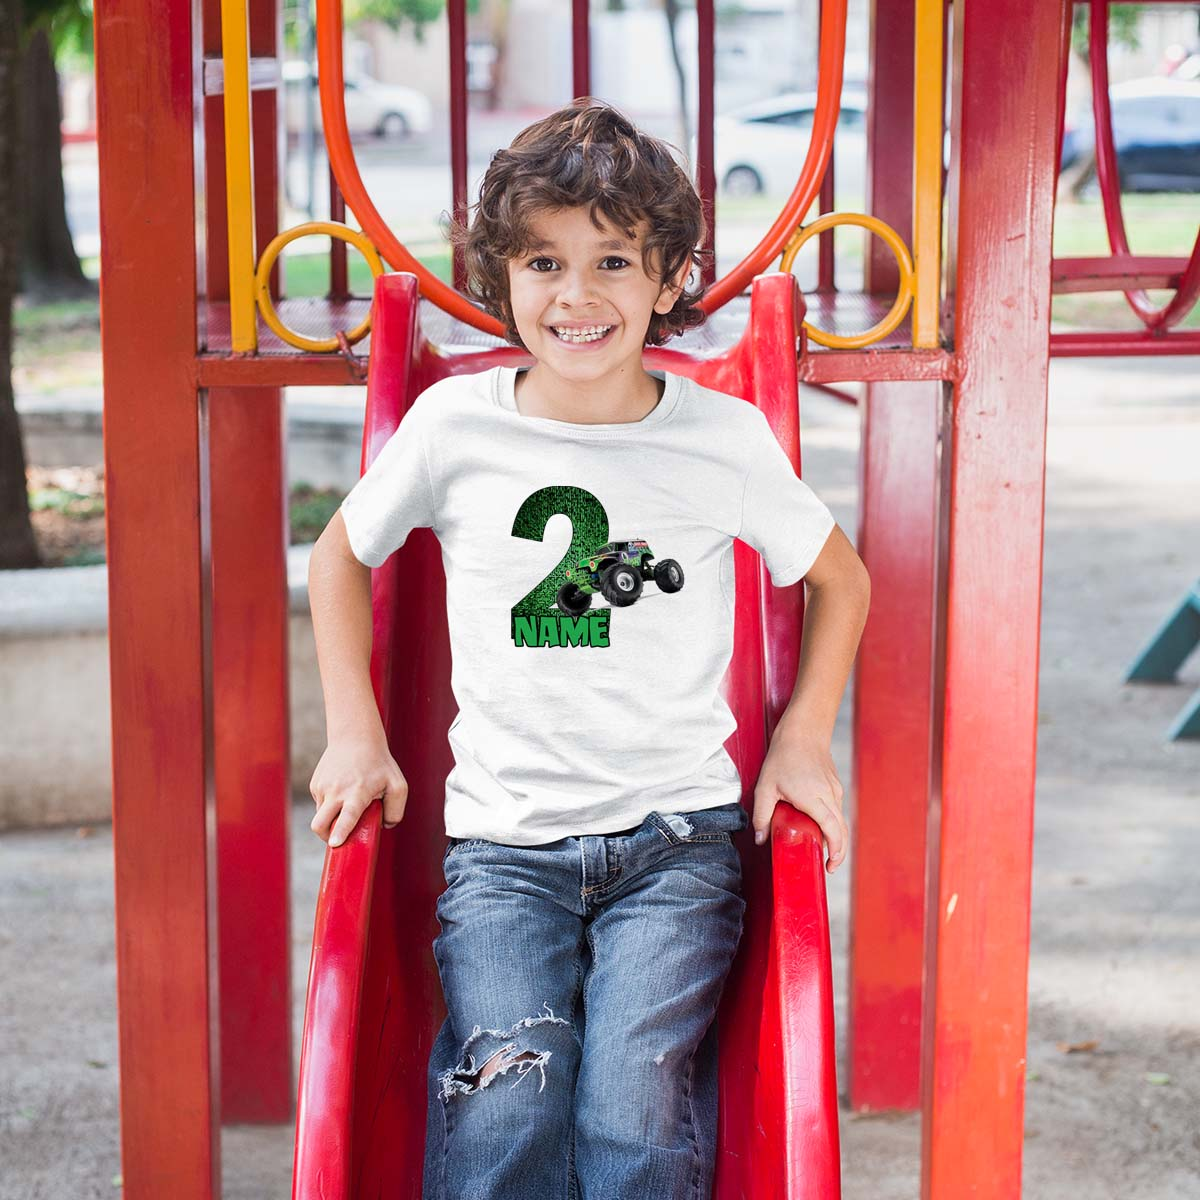 Sprinklecart Custom Name and Age Printed Vehicle T Shirt for Boys | Personalized 2nd Birthday Wear